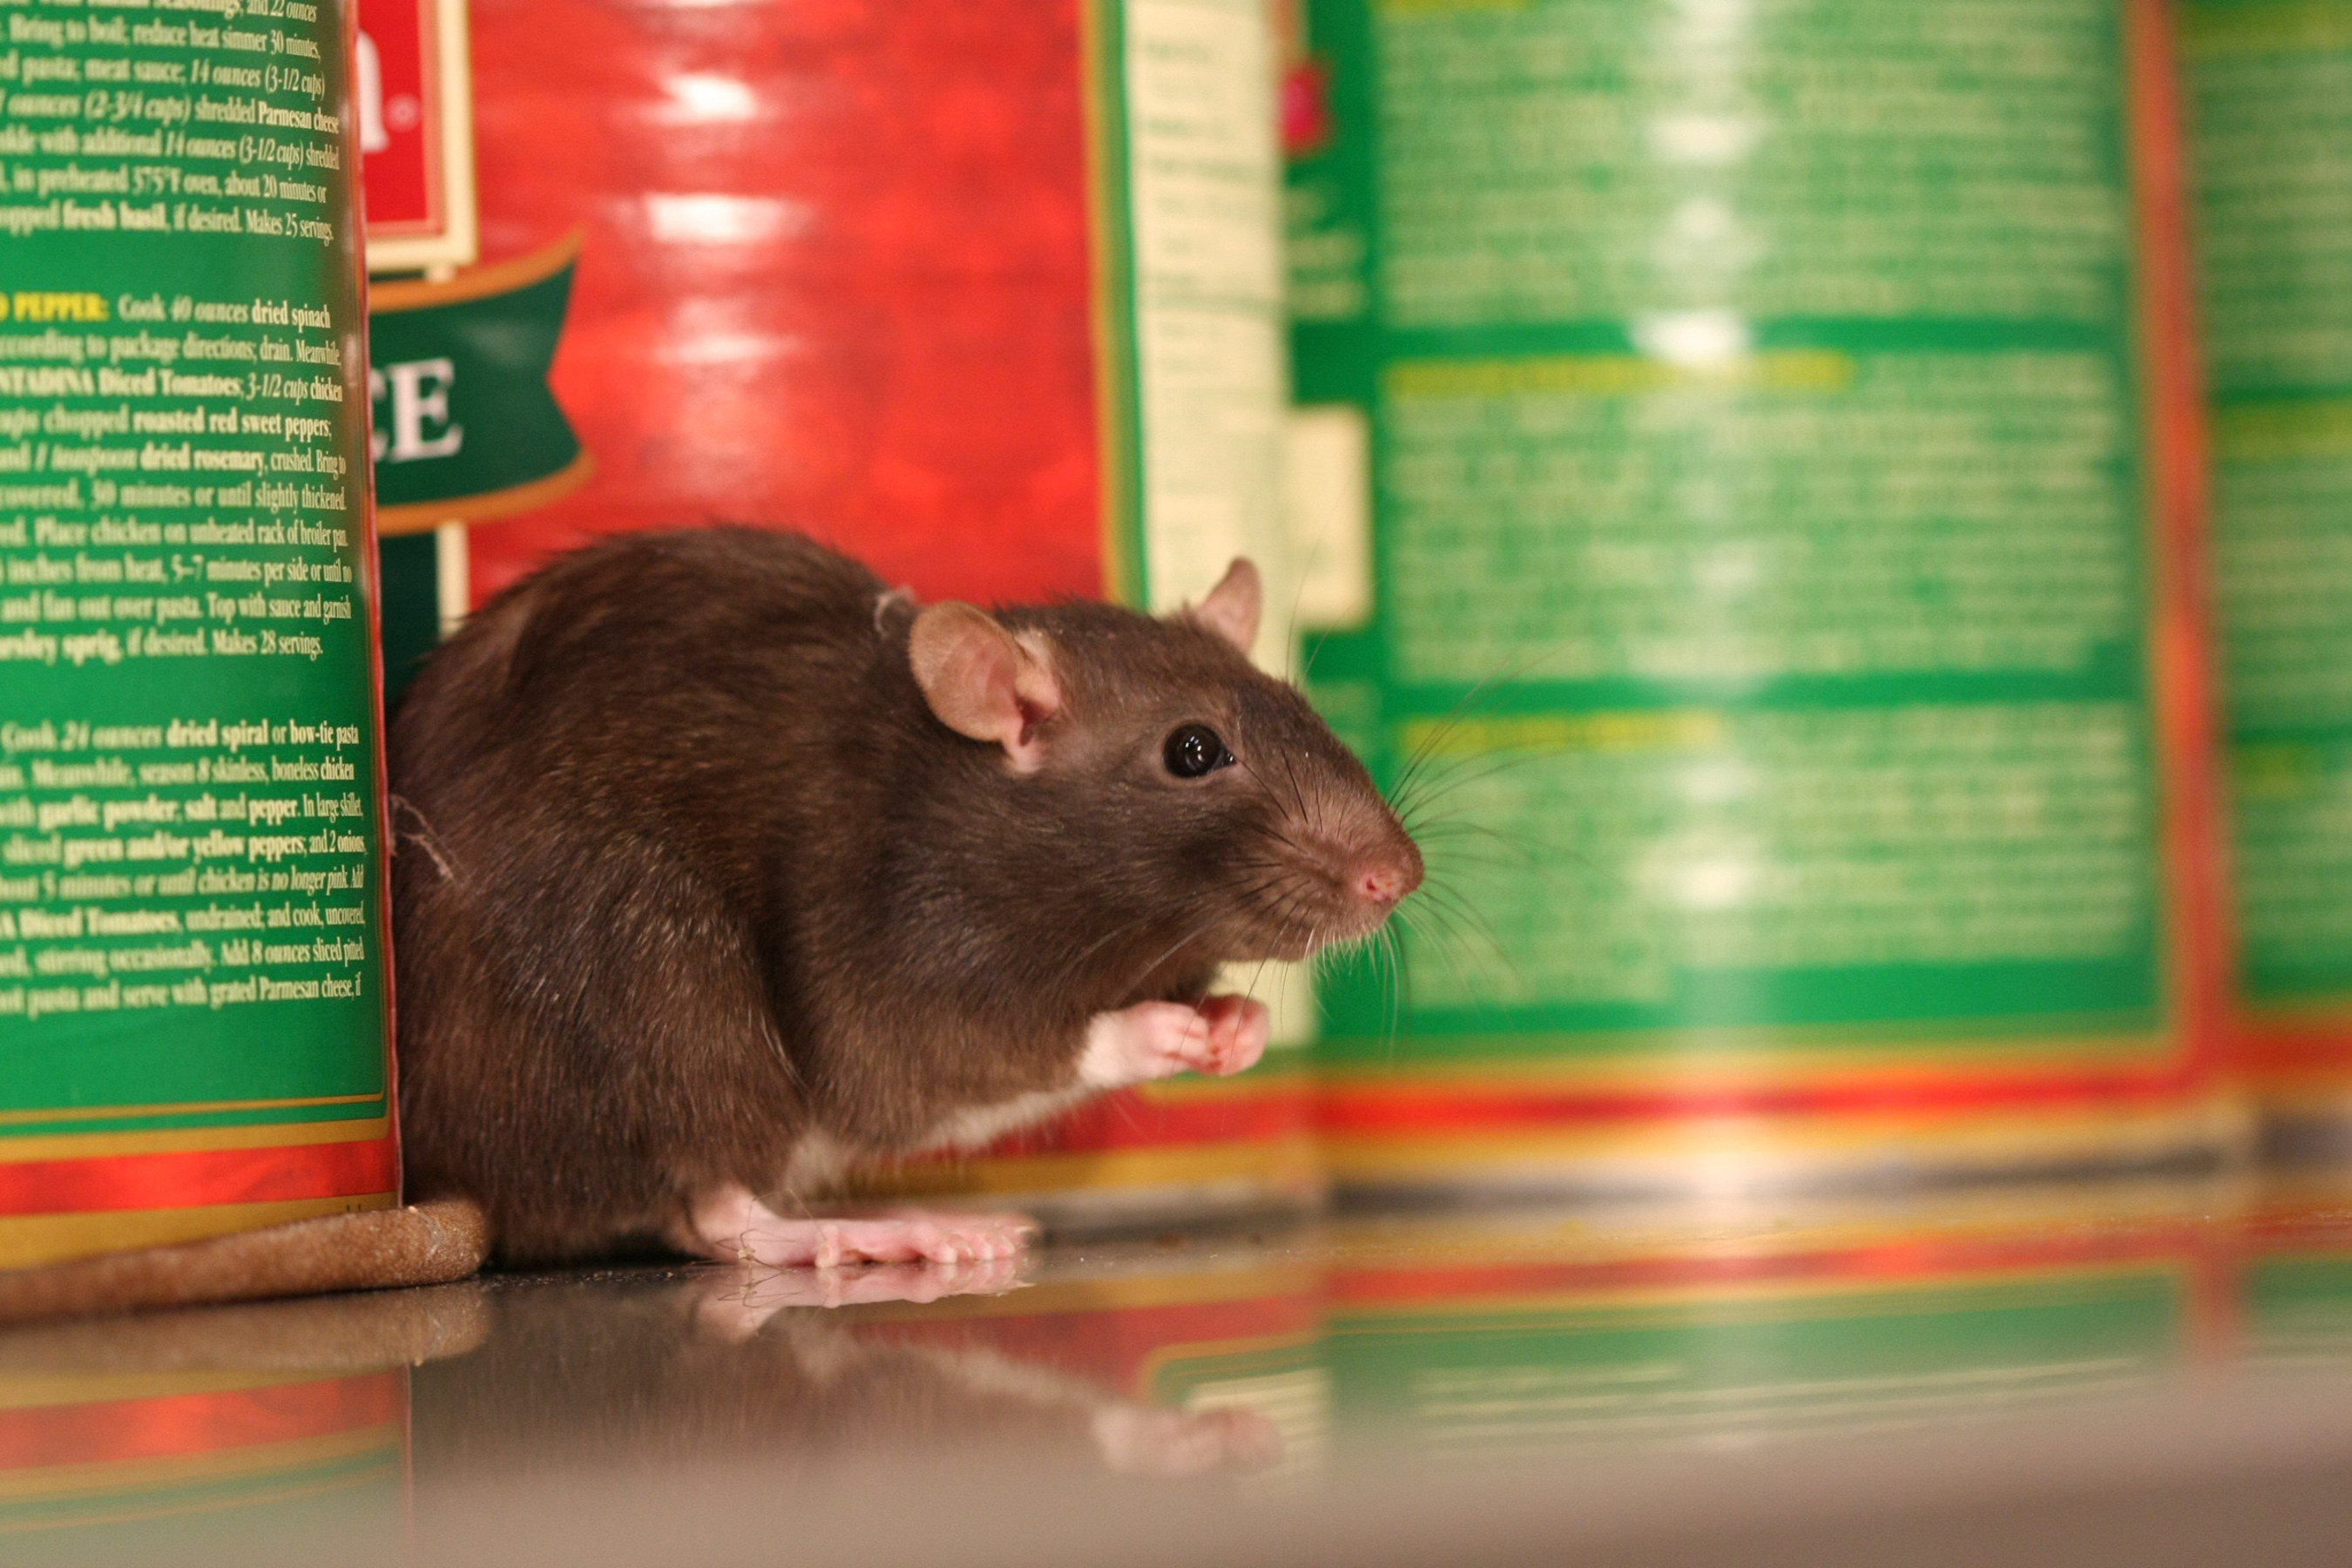 Chicago tops Orkin's Top 50 Rattiest Cities List, based on Orkin's rodent treatment data from October 1, 2015 - September 30, 2016.